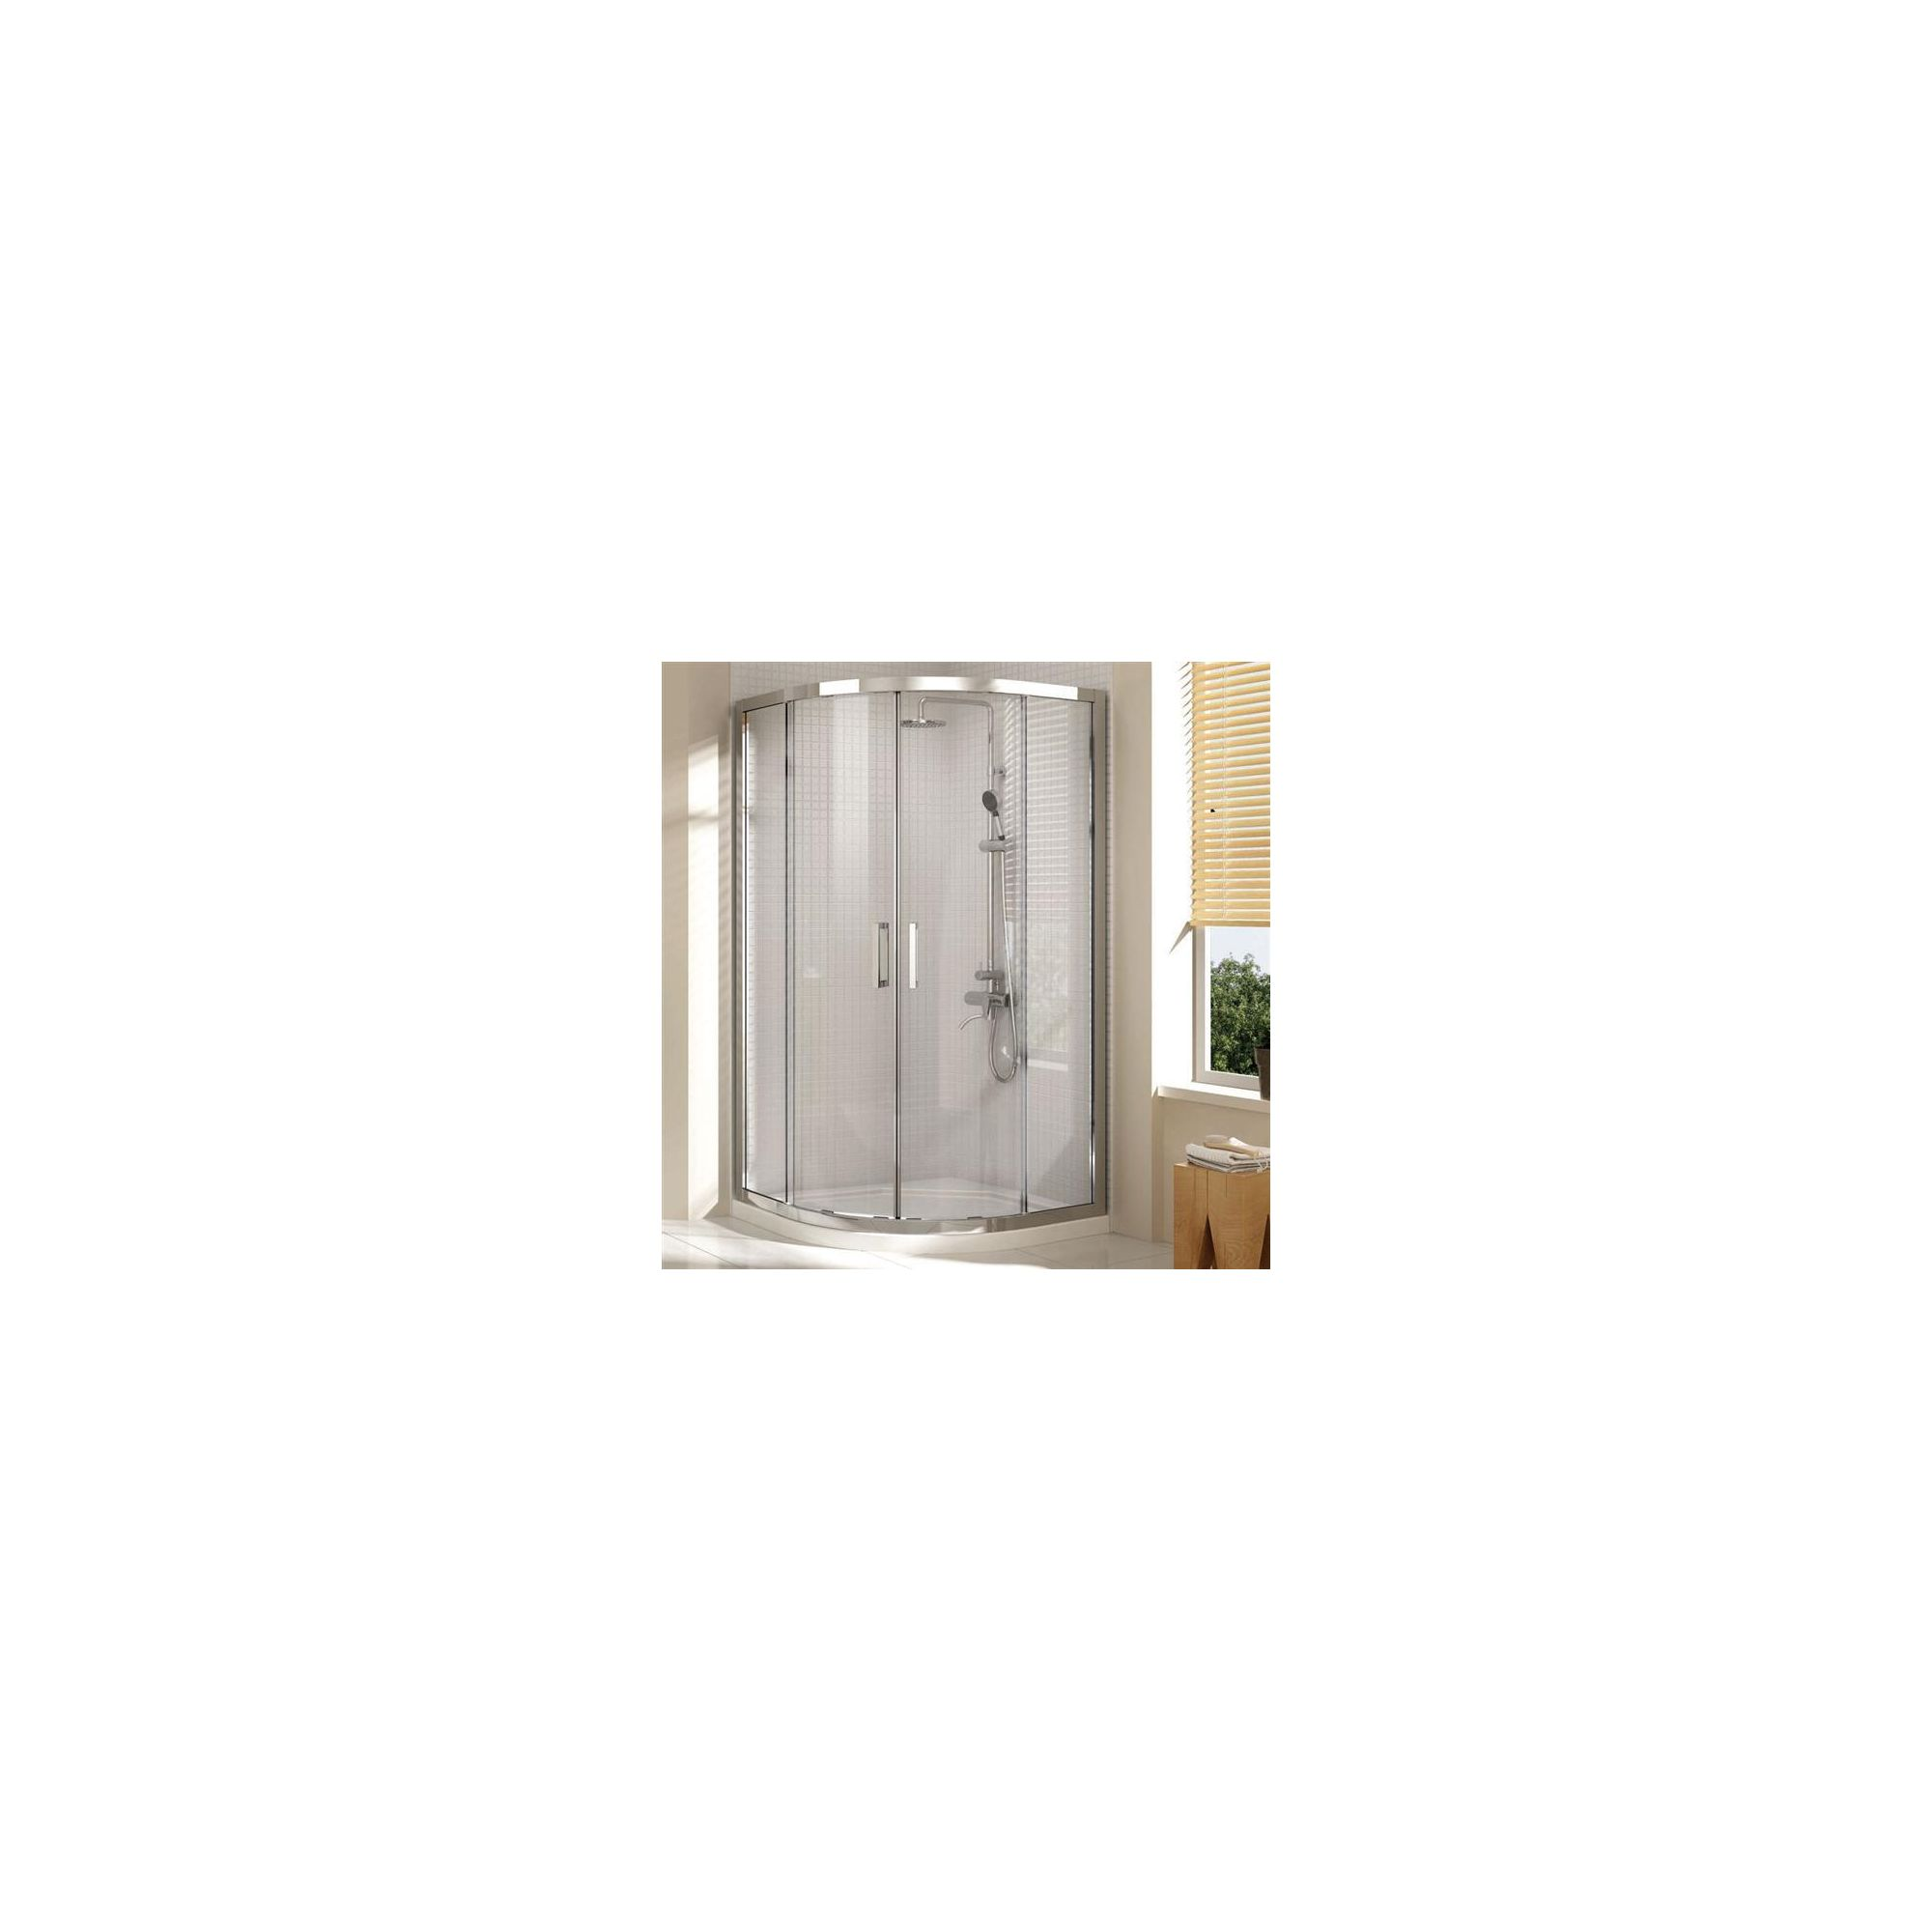 Merlyn Vivid Eight Quadrant Shower Door, 900mm x 900mm, 8mm Glass at Tesco Direct